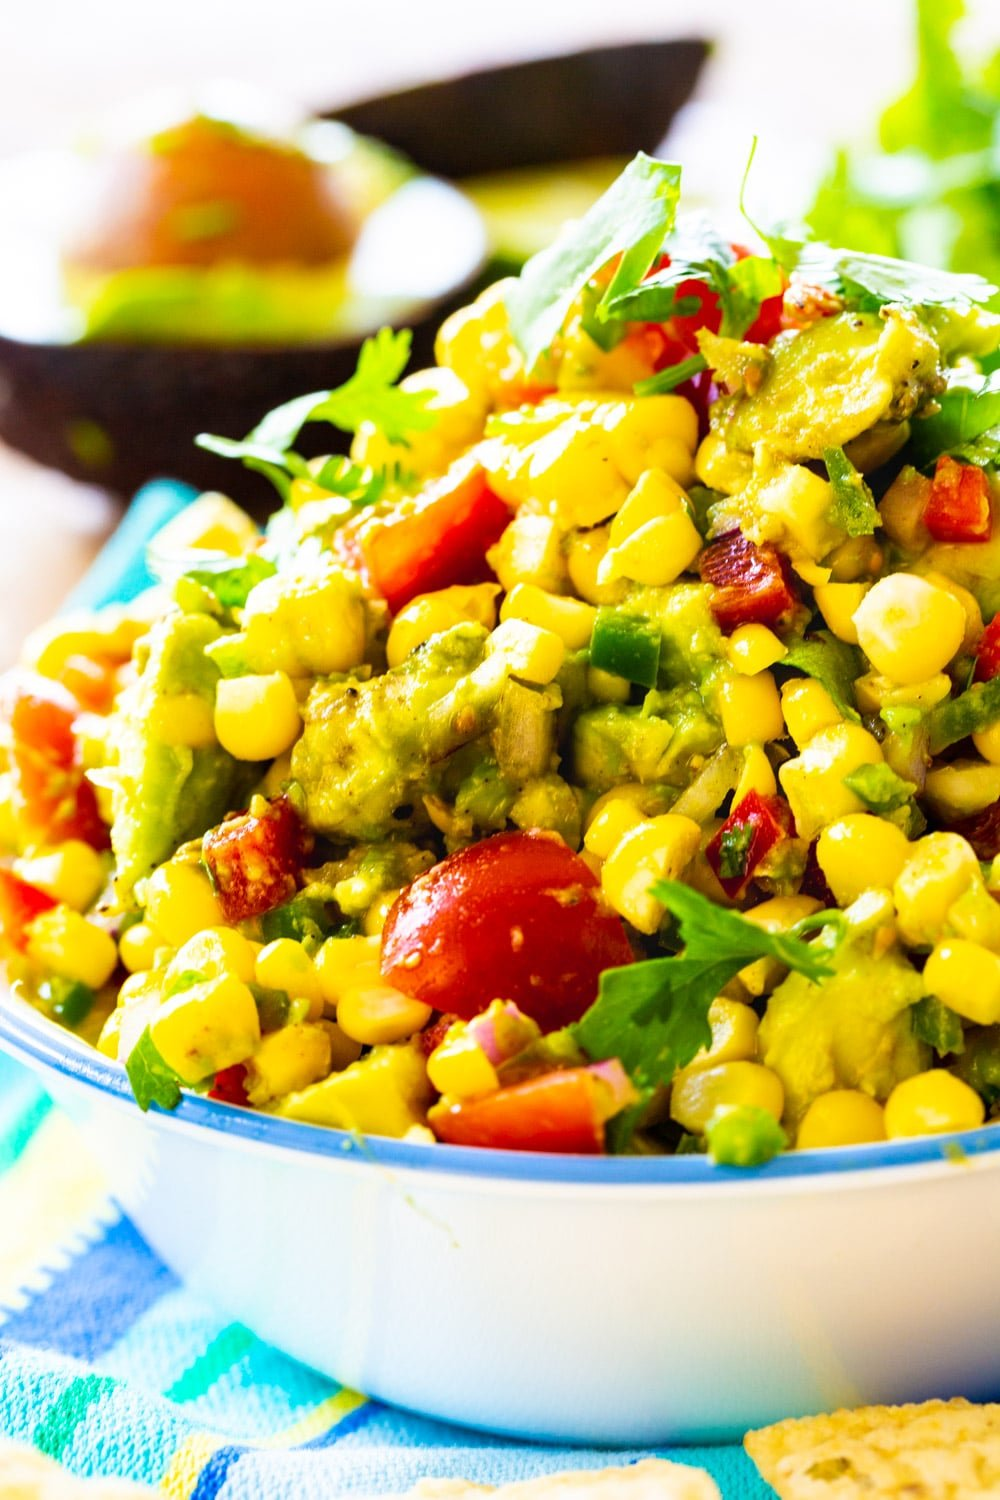 Avocado and Corn Salsa piled high in a bowl.